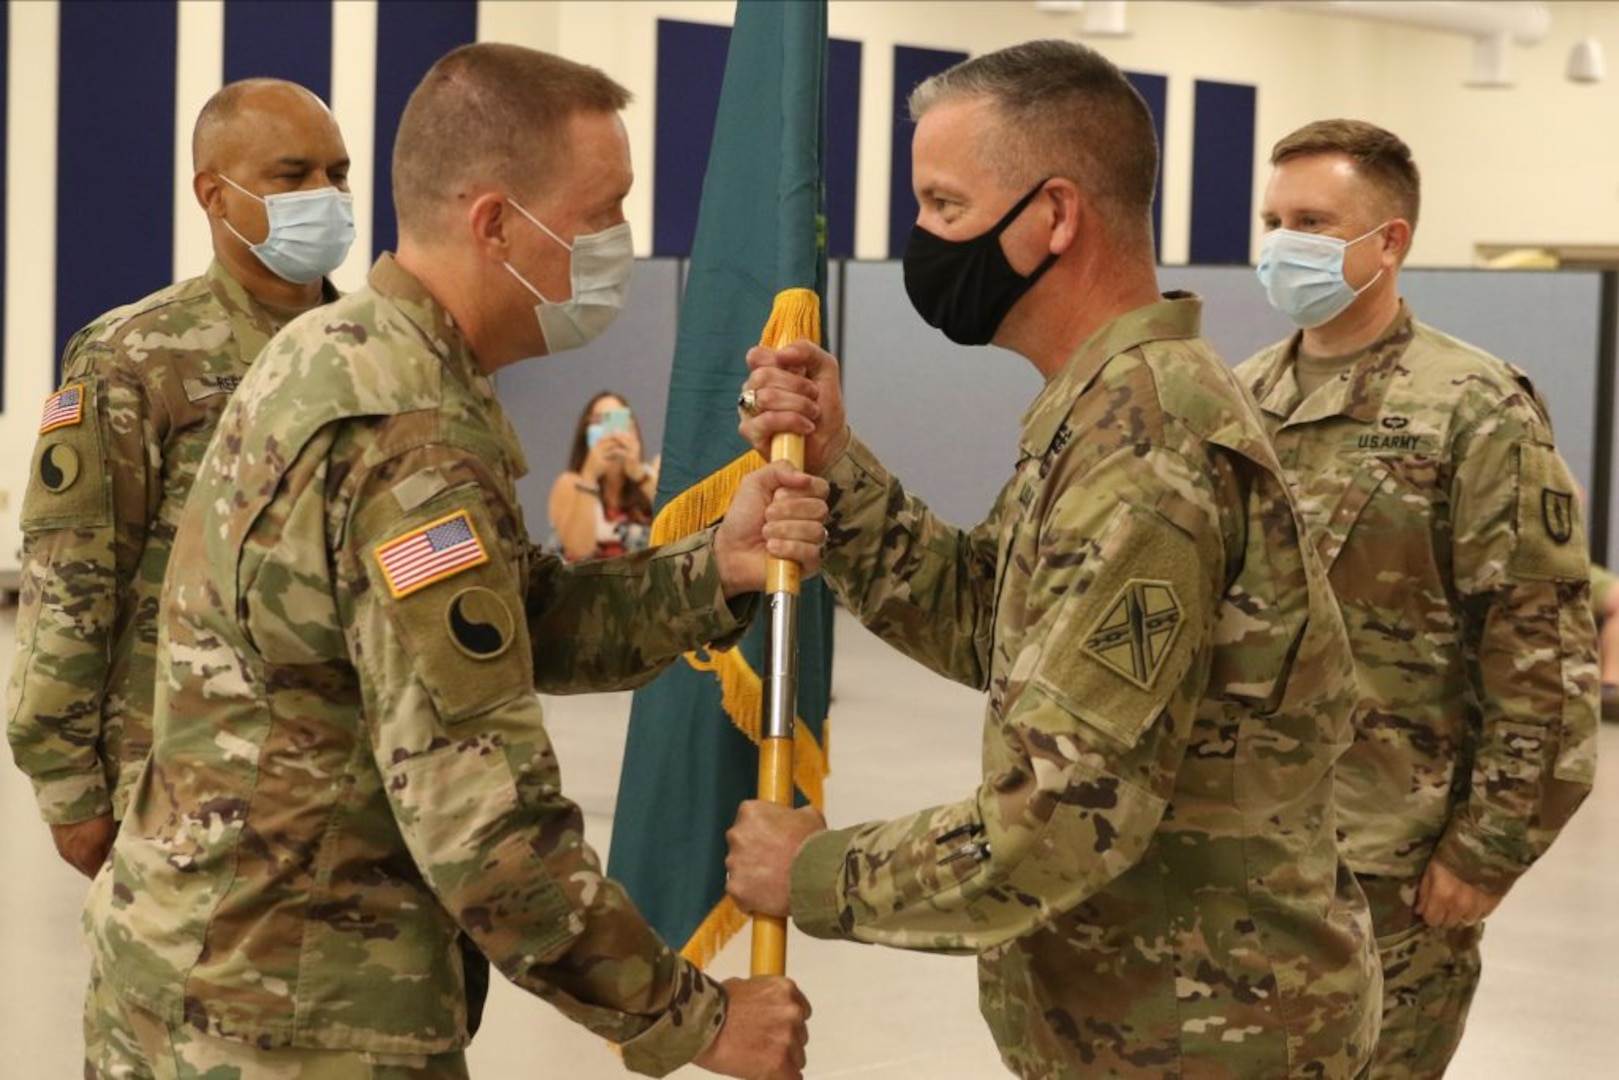 Martin succeeds Hubbard as 183rd RTI commander